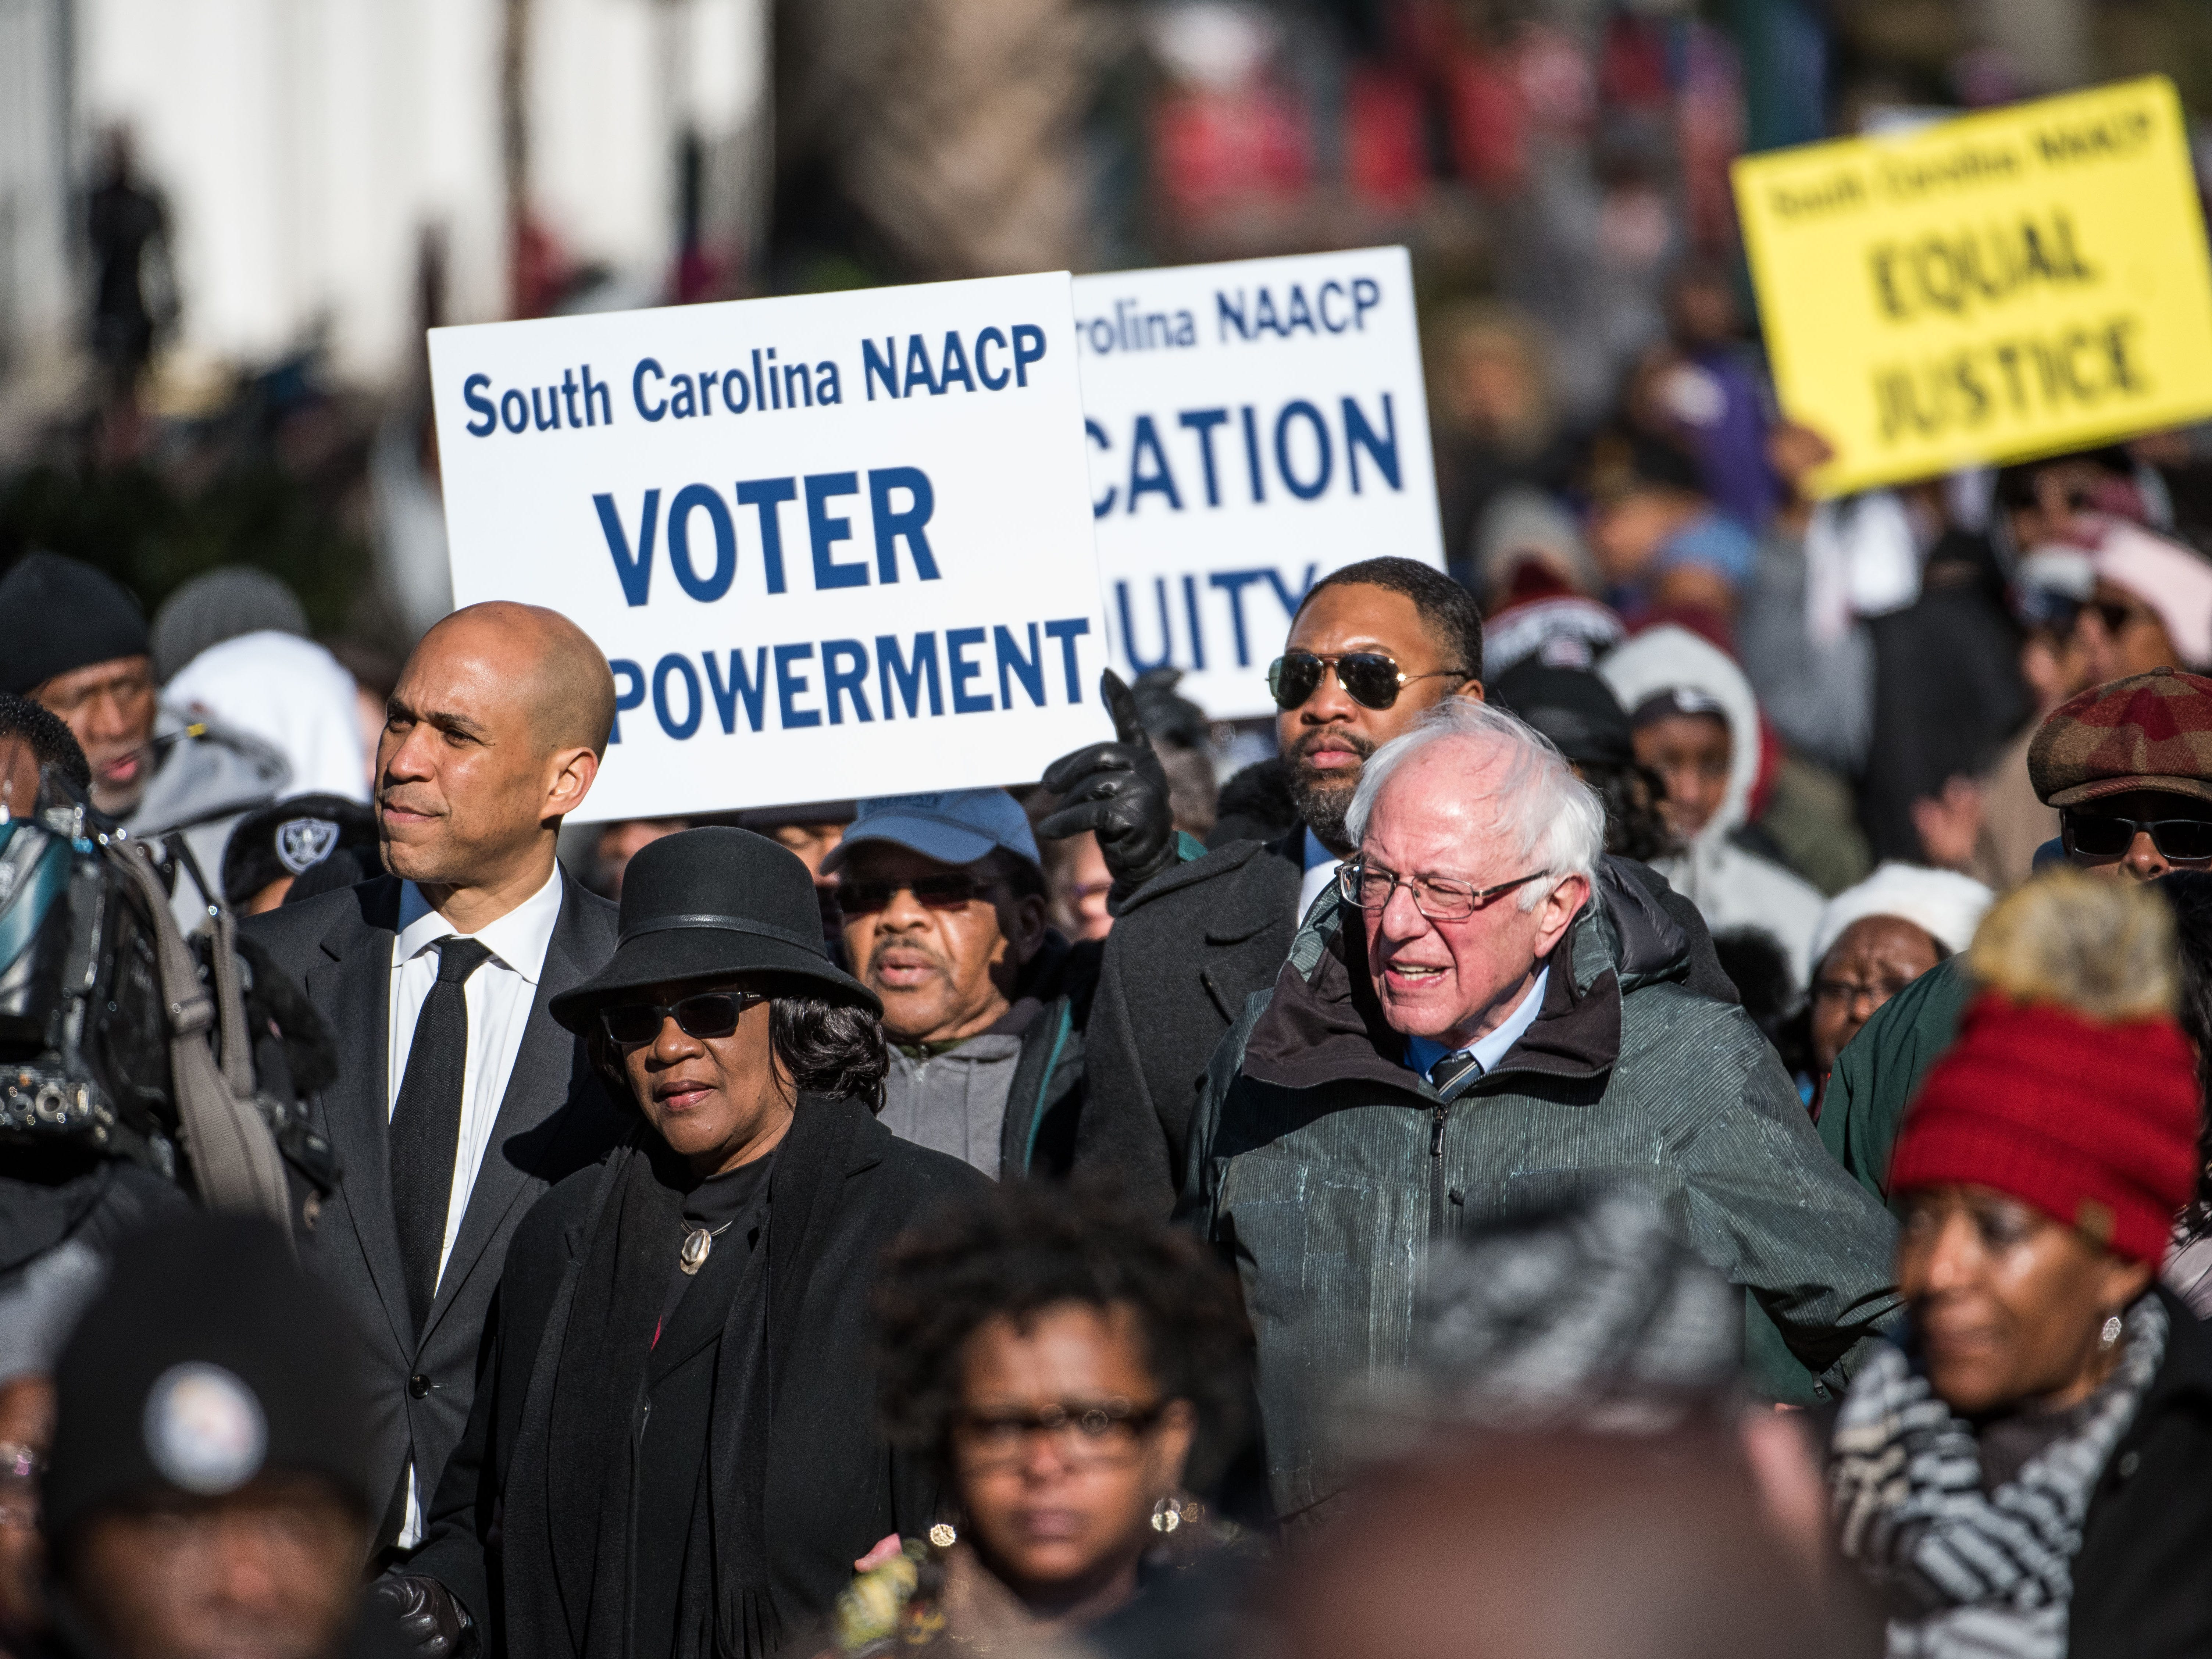 Sen. Bernie Sanders, President of the South Carolina NAACP chapter, Brenda Murphy and Sen. Cory Booker march down Main St. to the Statehouse in commemoration of Martin Luther King Jr. Day in Columbia, So.C.